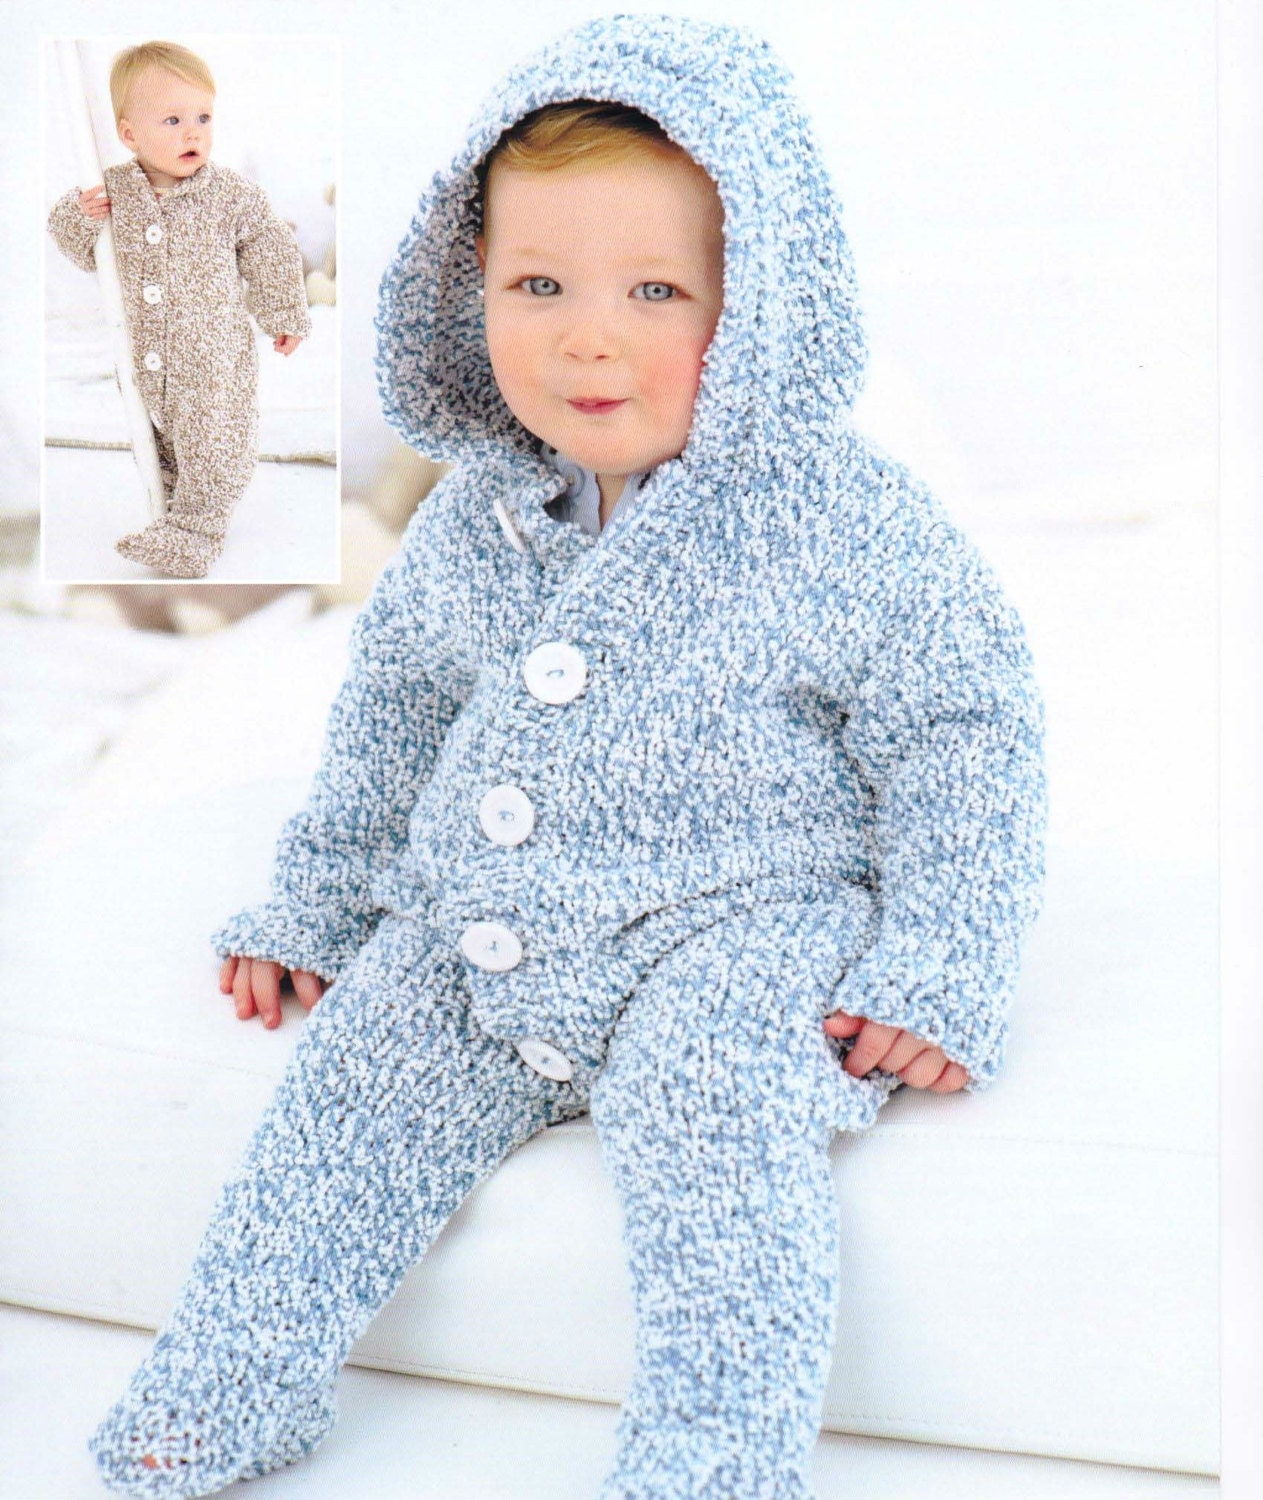 Knitting Pattern For Newborn Jumper : Knit Baby Jumper and Hoodie Vintage Pattern knitting jumpsuit